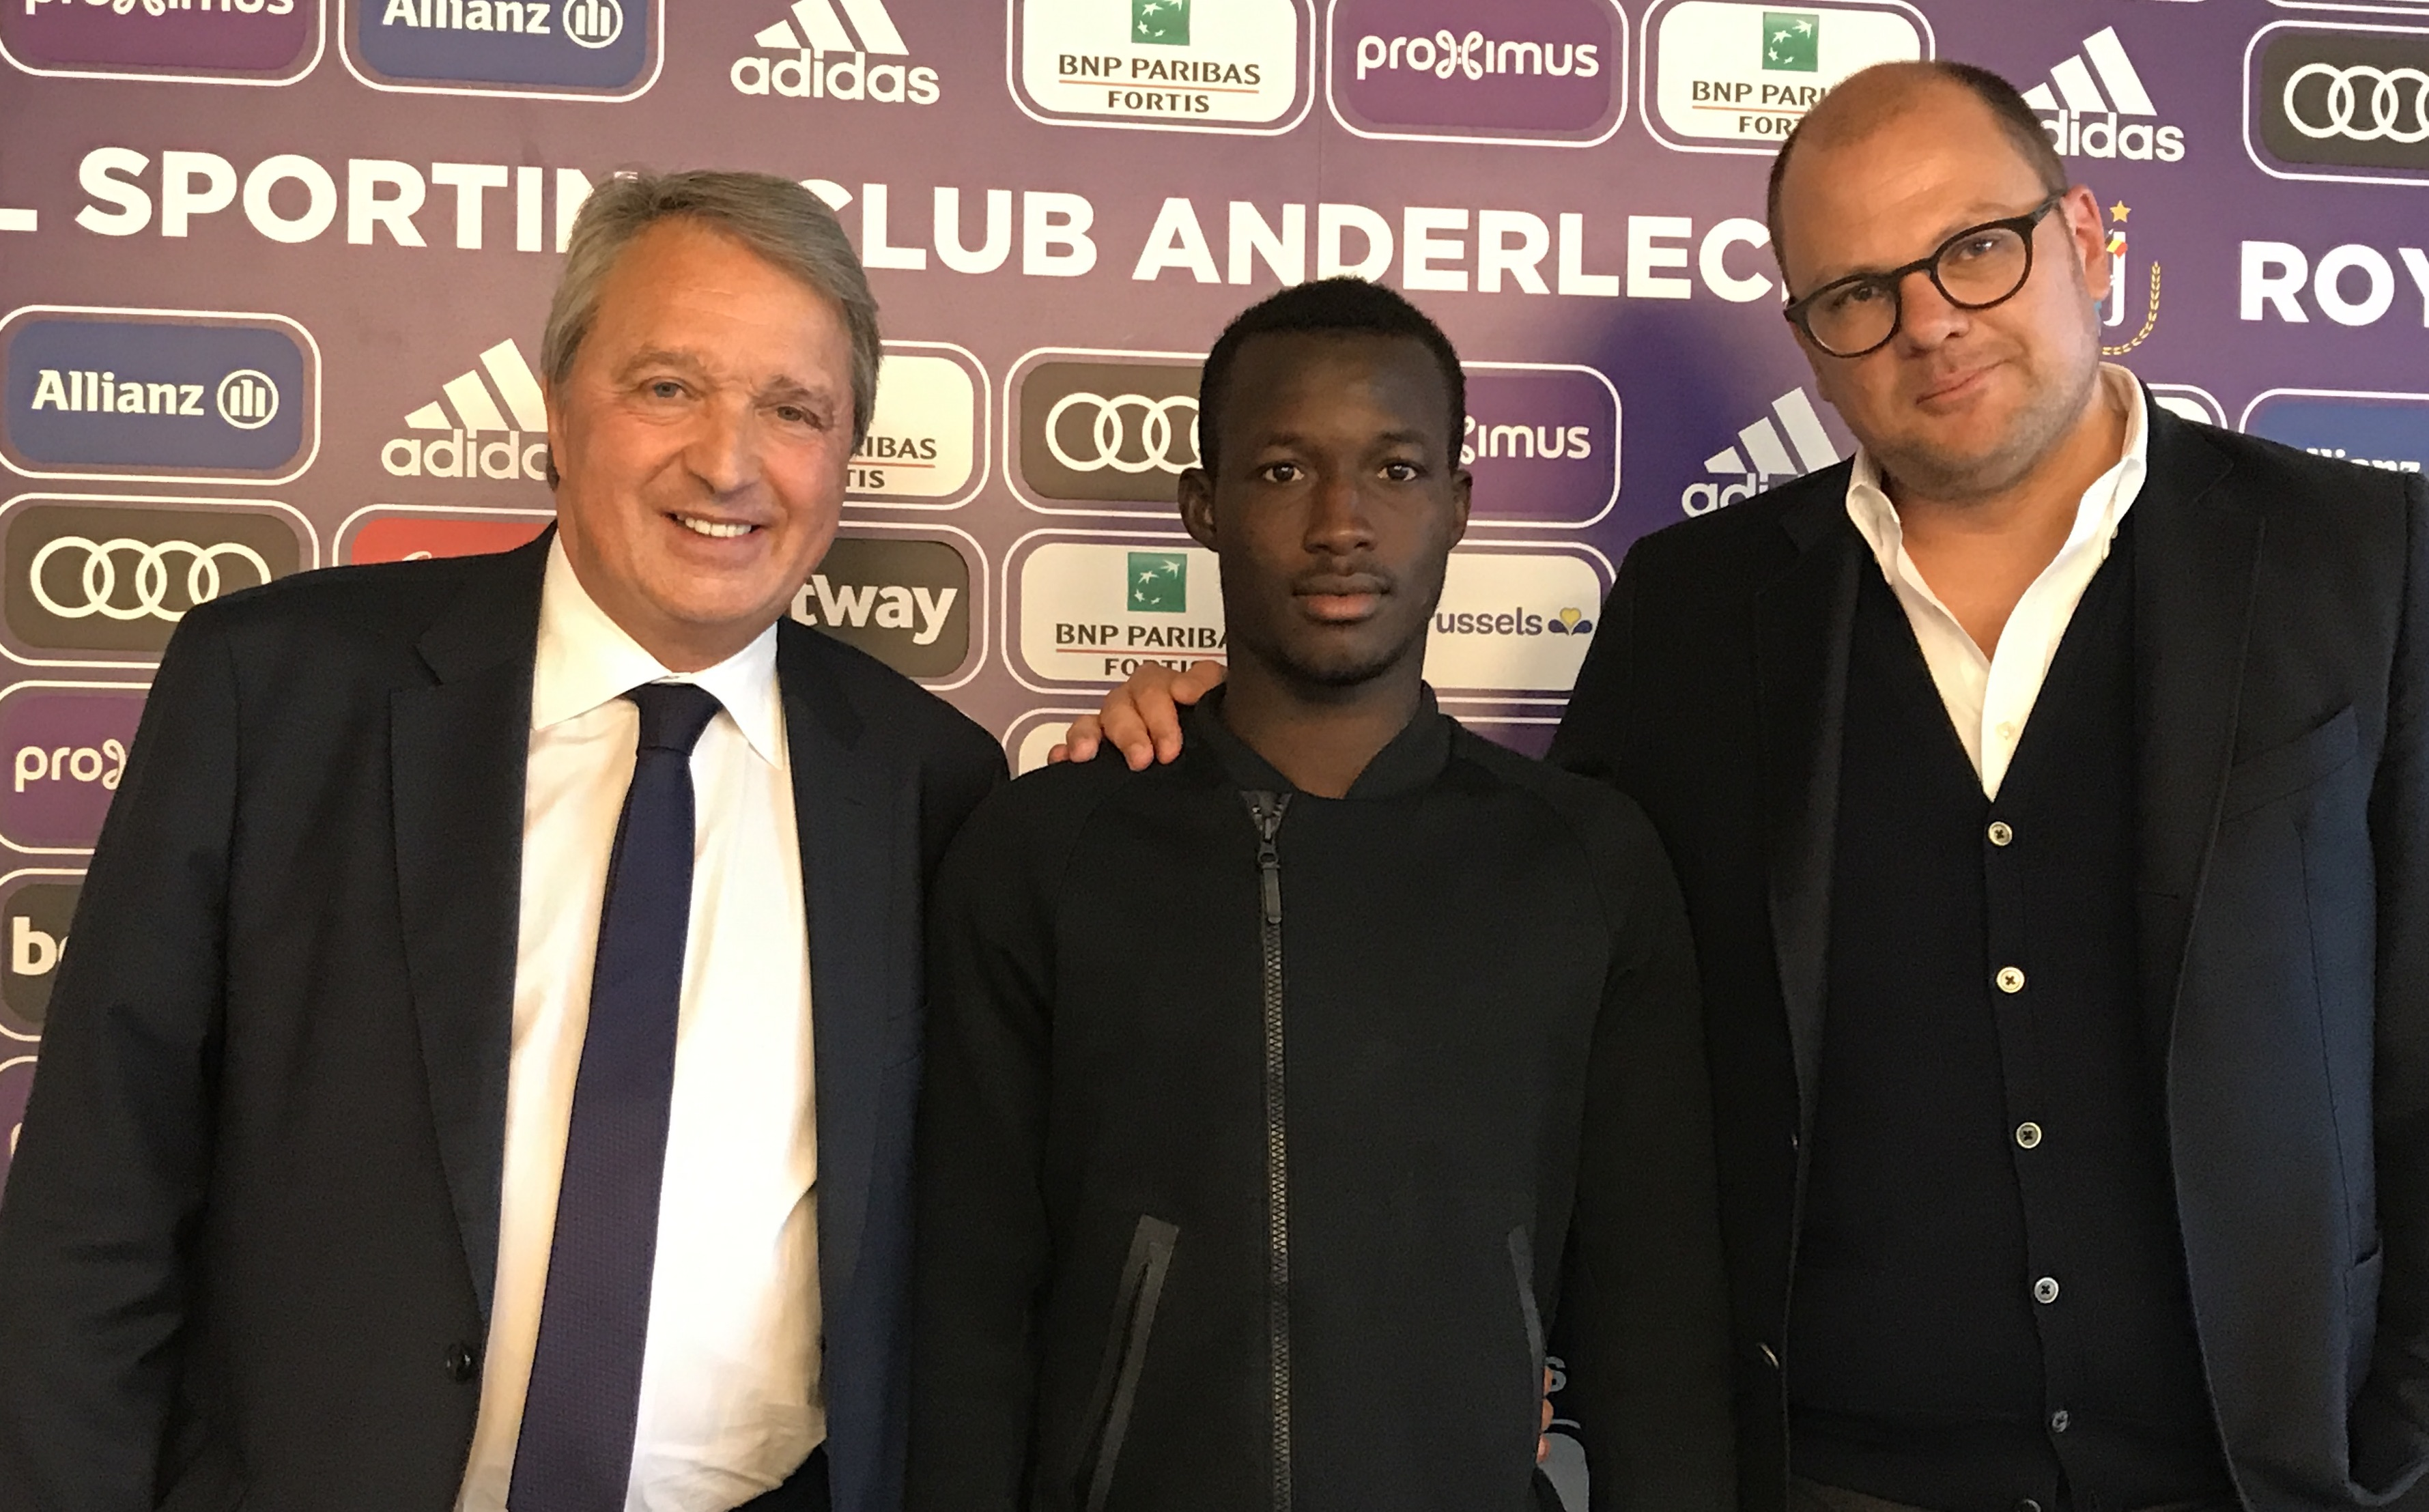 EXCLUSIVE: Division Two side Accra Lions FC ship out teenage prodigy Osman Bukari to Anderlecht